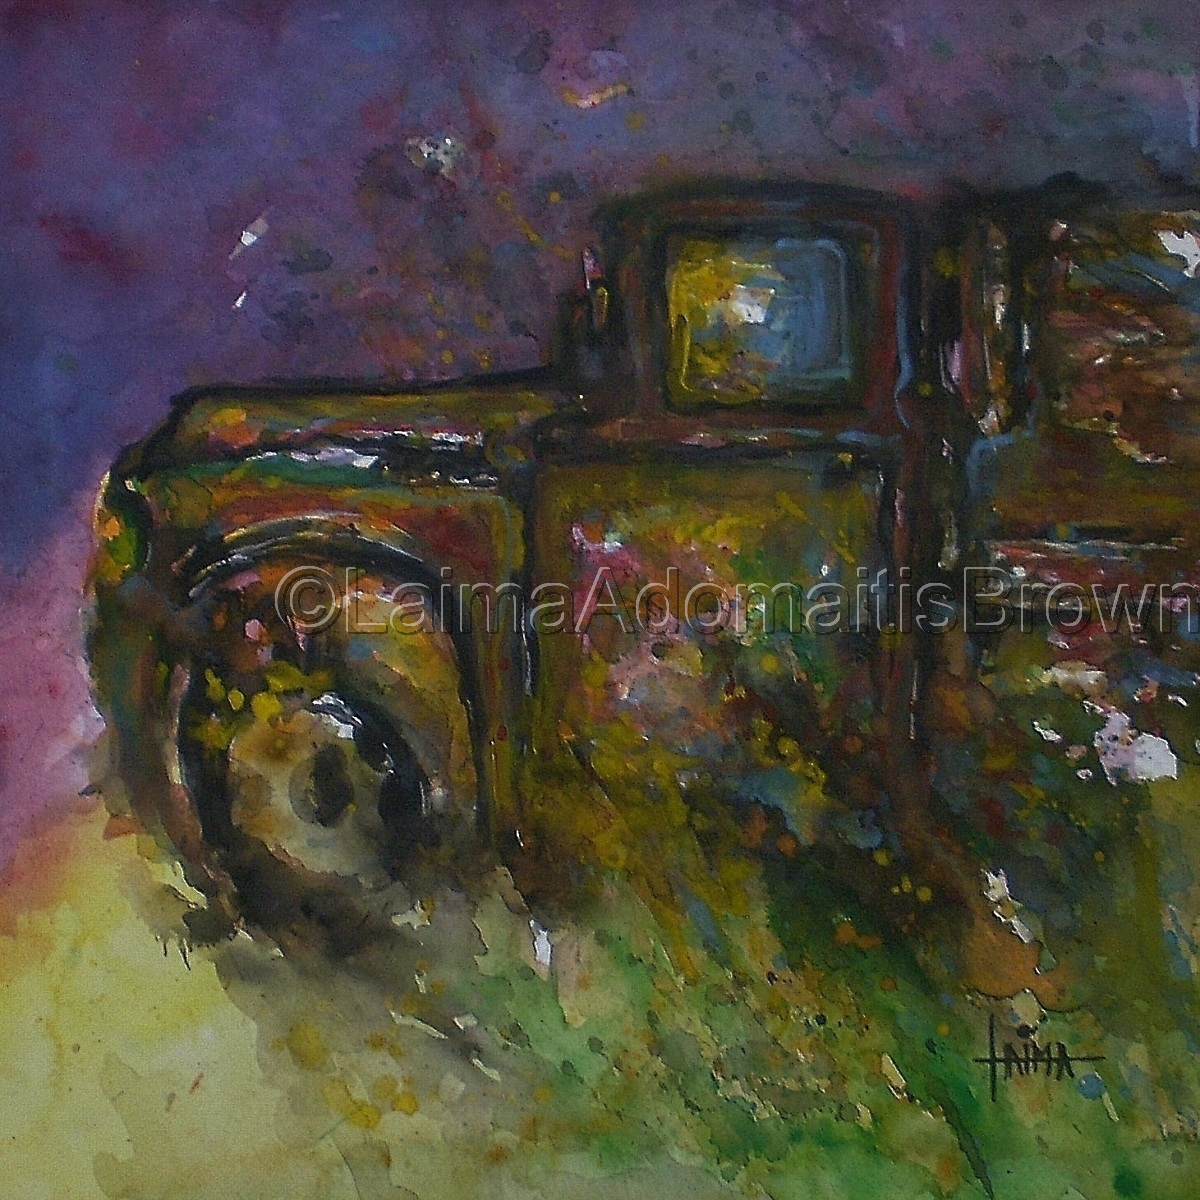 Retro vintage abandoned old rusty truck in a field glows with vibrant colors as trash to treasure, watercolors, gouache, mixed media, old truck, vintage, antique, charming, sourthwestern, country, farm, praire (large view)